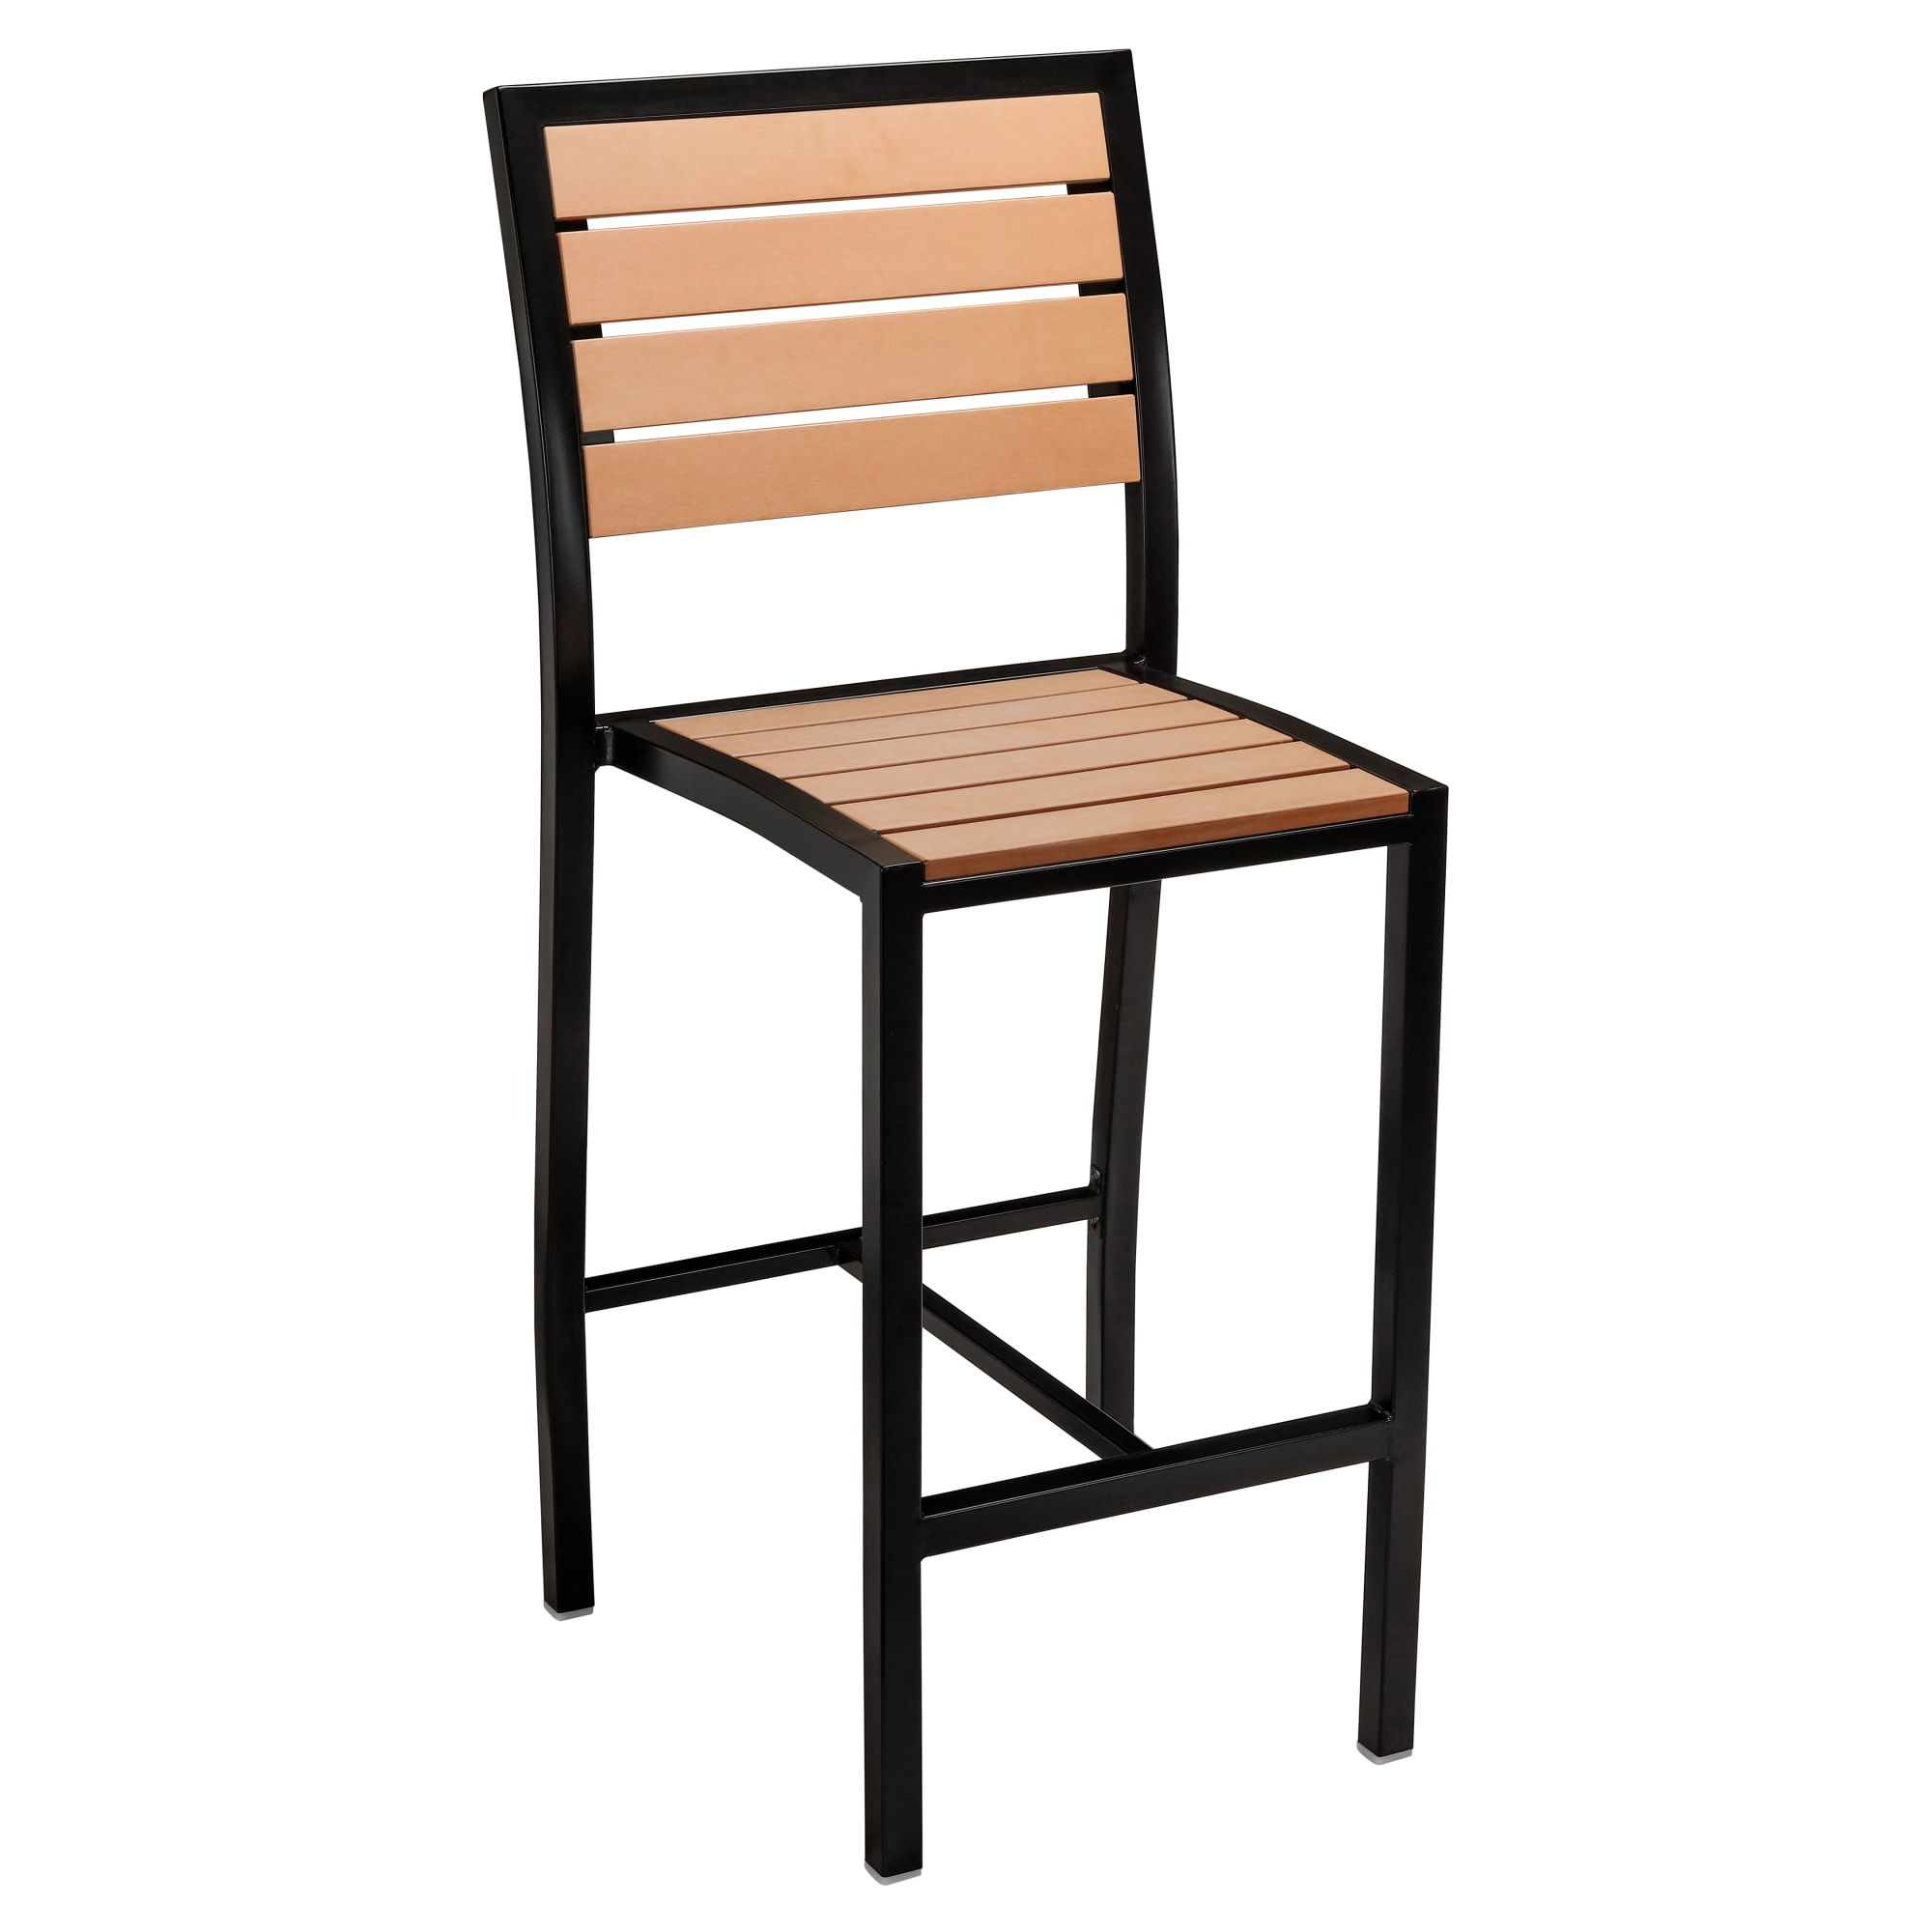 Black Heavy Duty Plastic Teak Patio Bar Stool with Black Heavy Duty Plastic Teak Patio Bar Stool